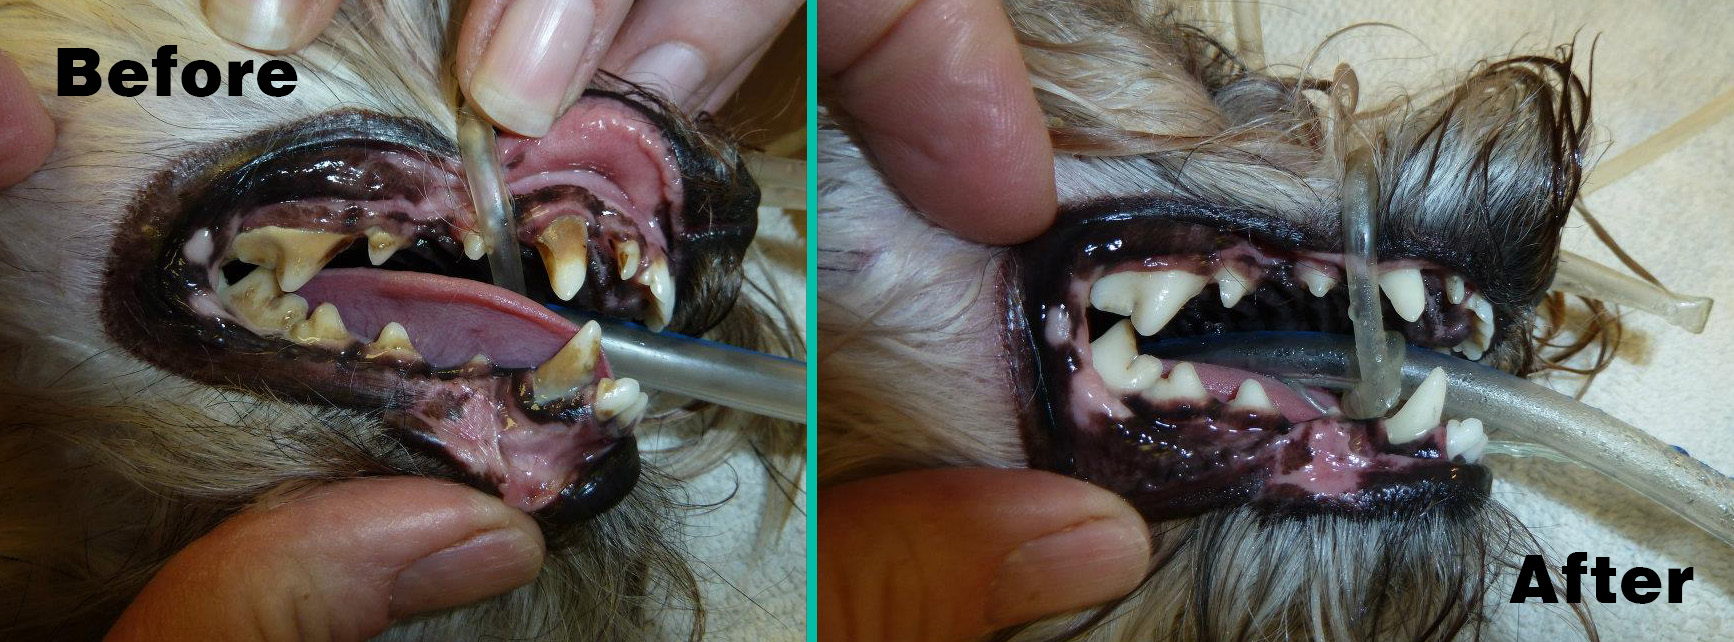 What Can Dogs Eat After Dental Surgery